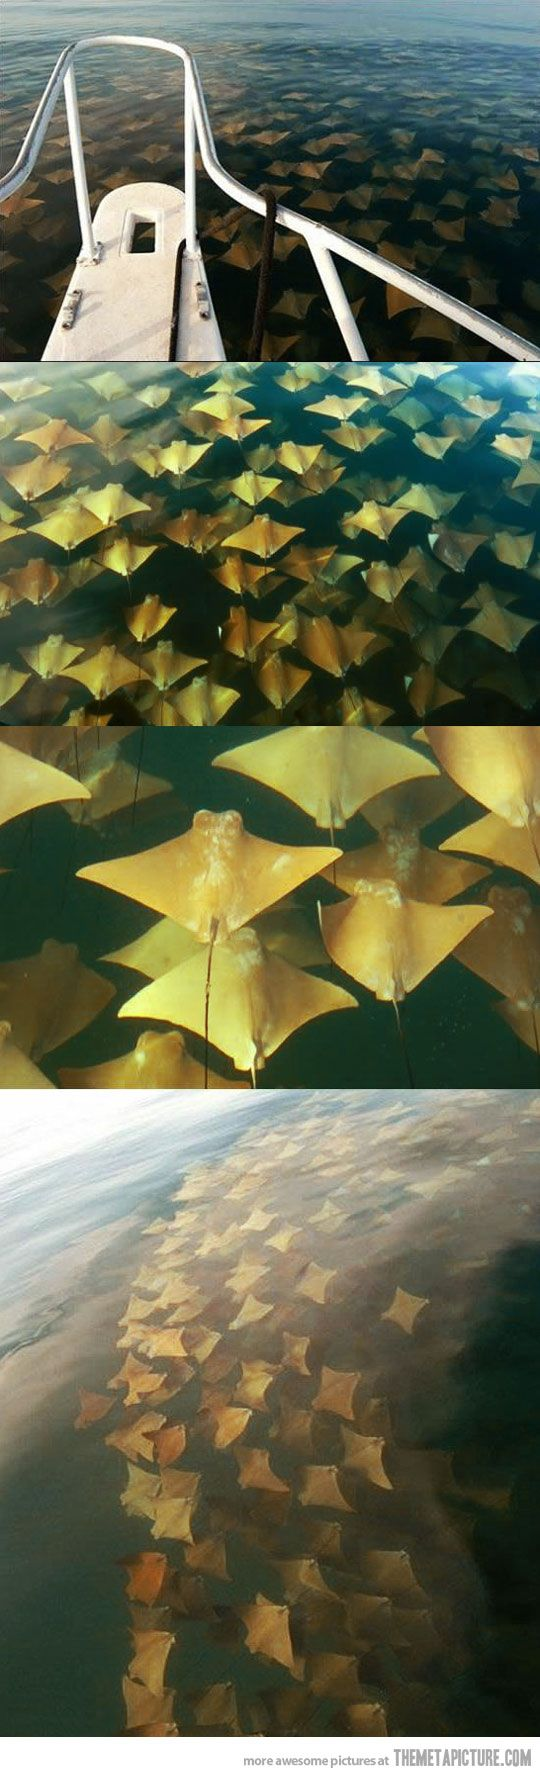 I wanna see The mass migration of the Cownose Ray in the Gulf of Mexico